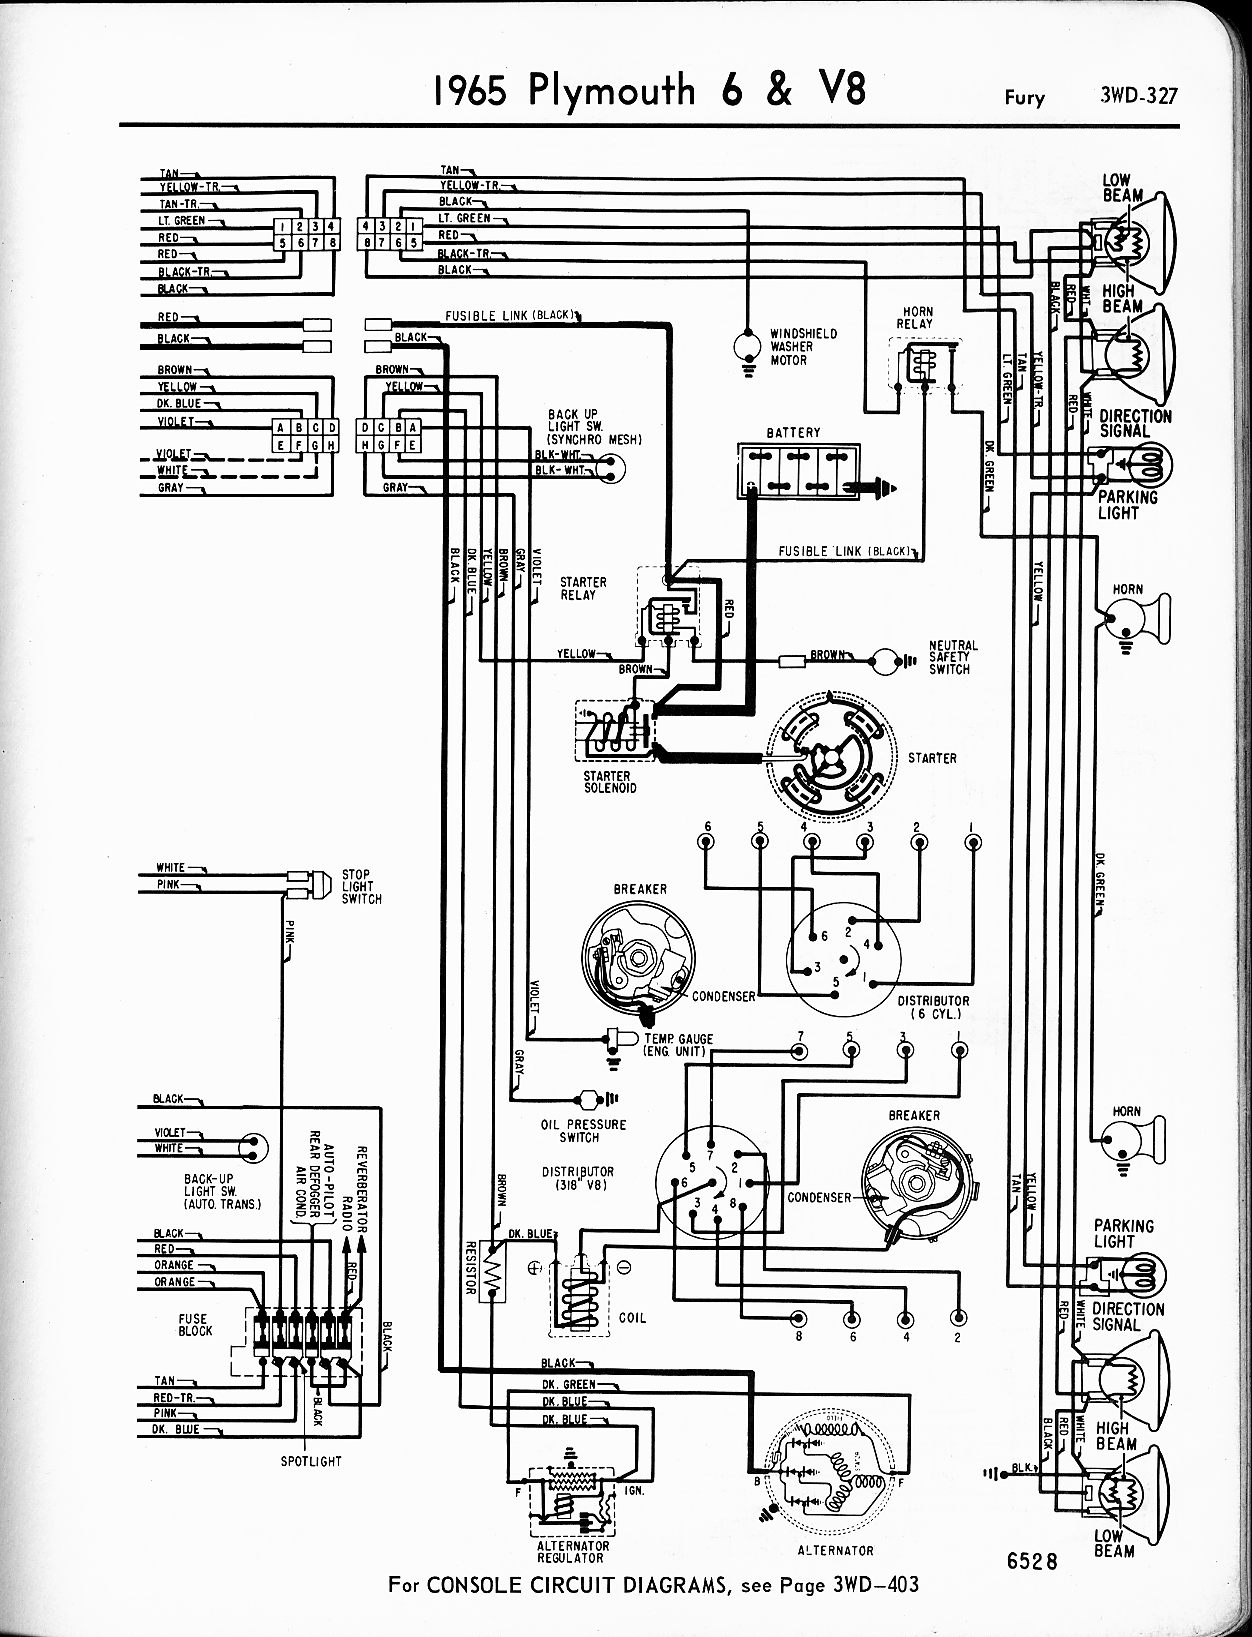 1963 Chrysler Wiring Diagram Schematics Plymouth Voyager Engine 68 Valiant Car Stereo